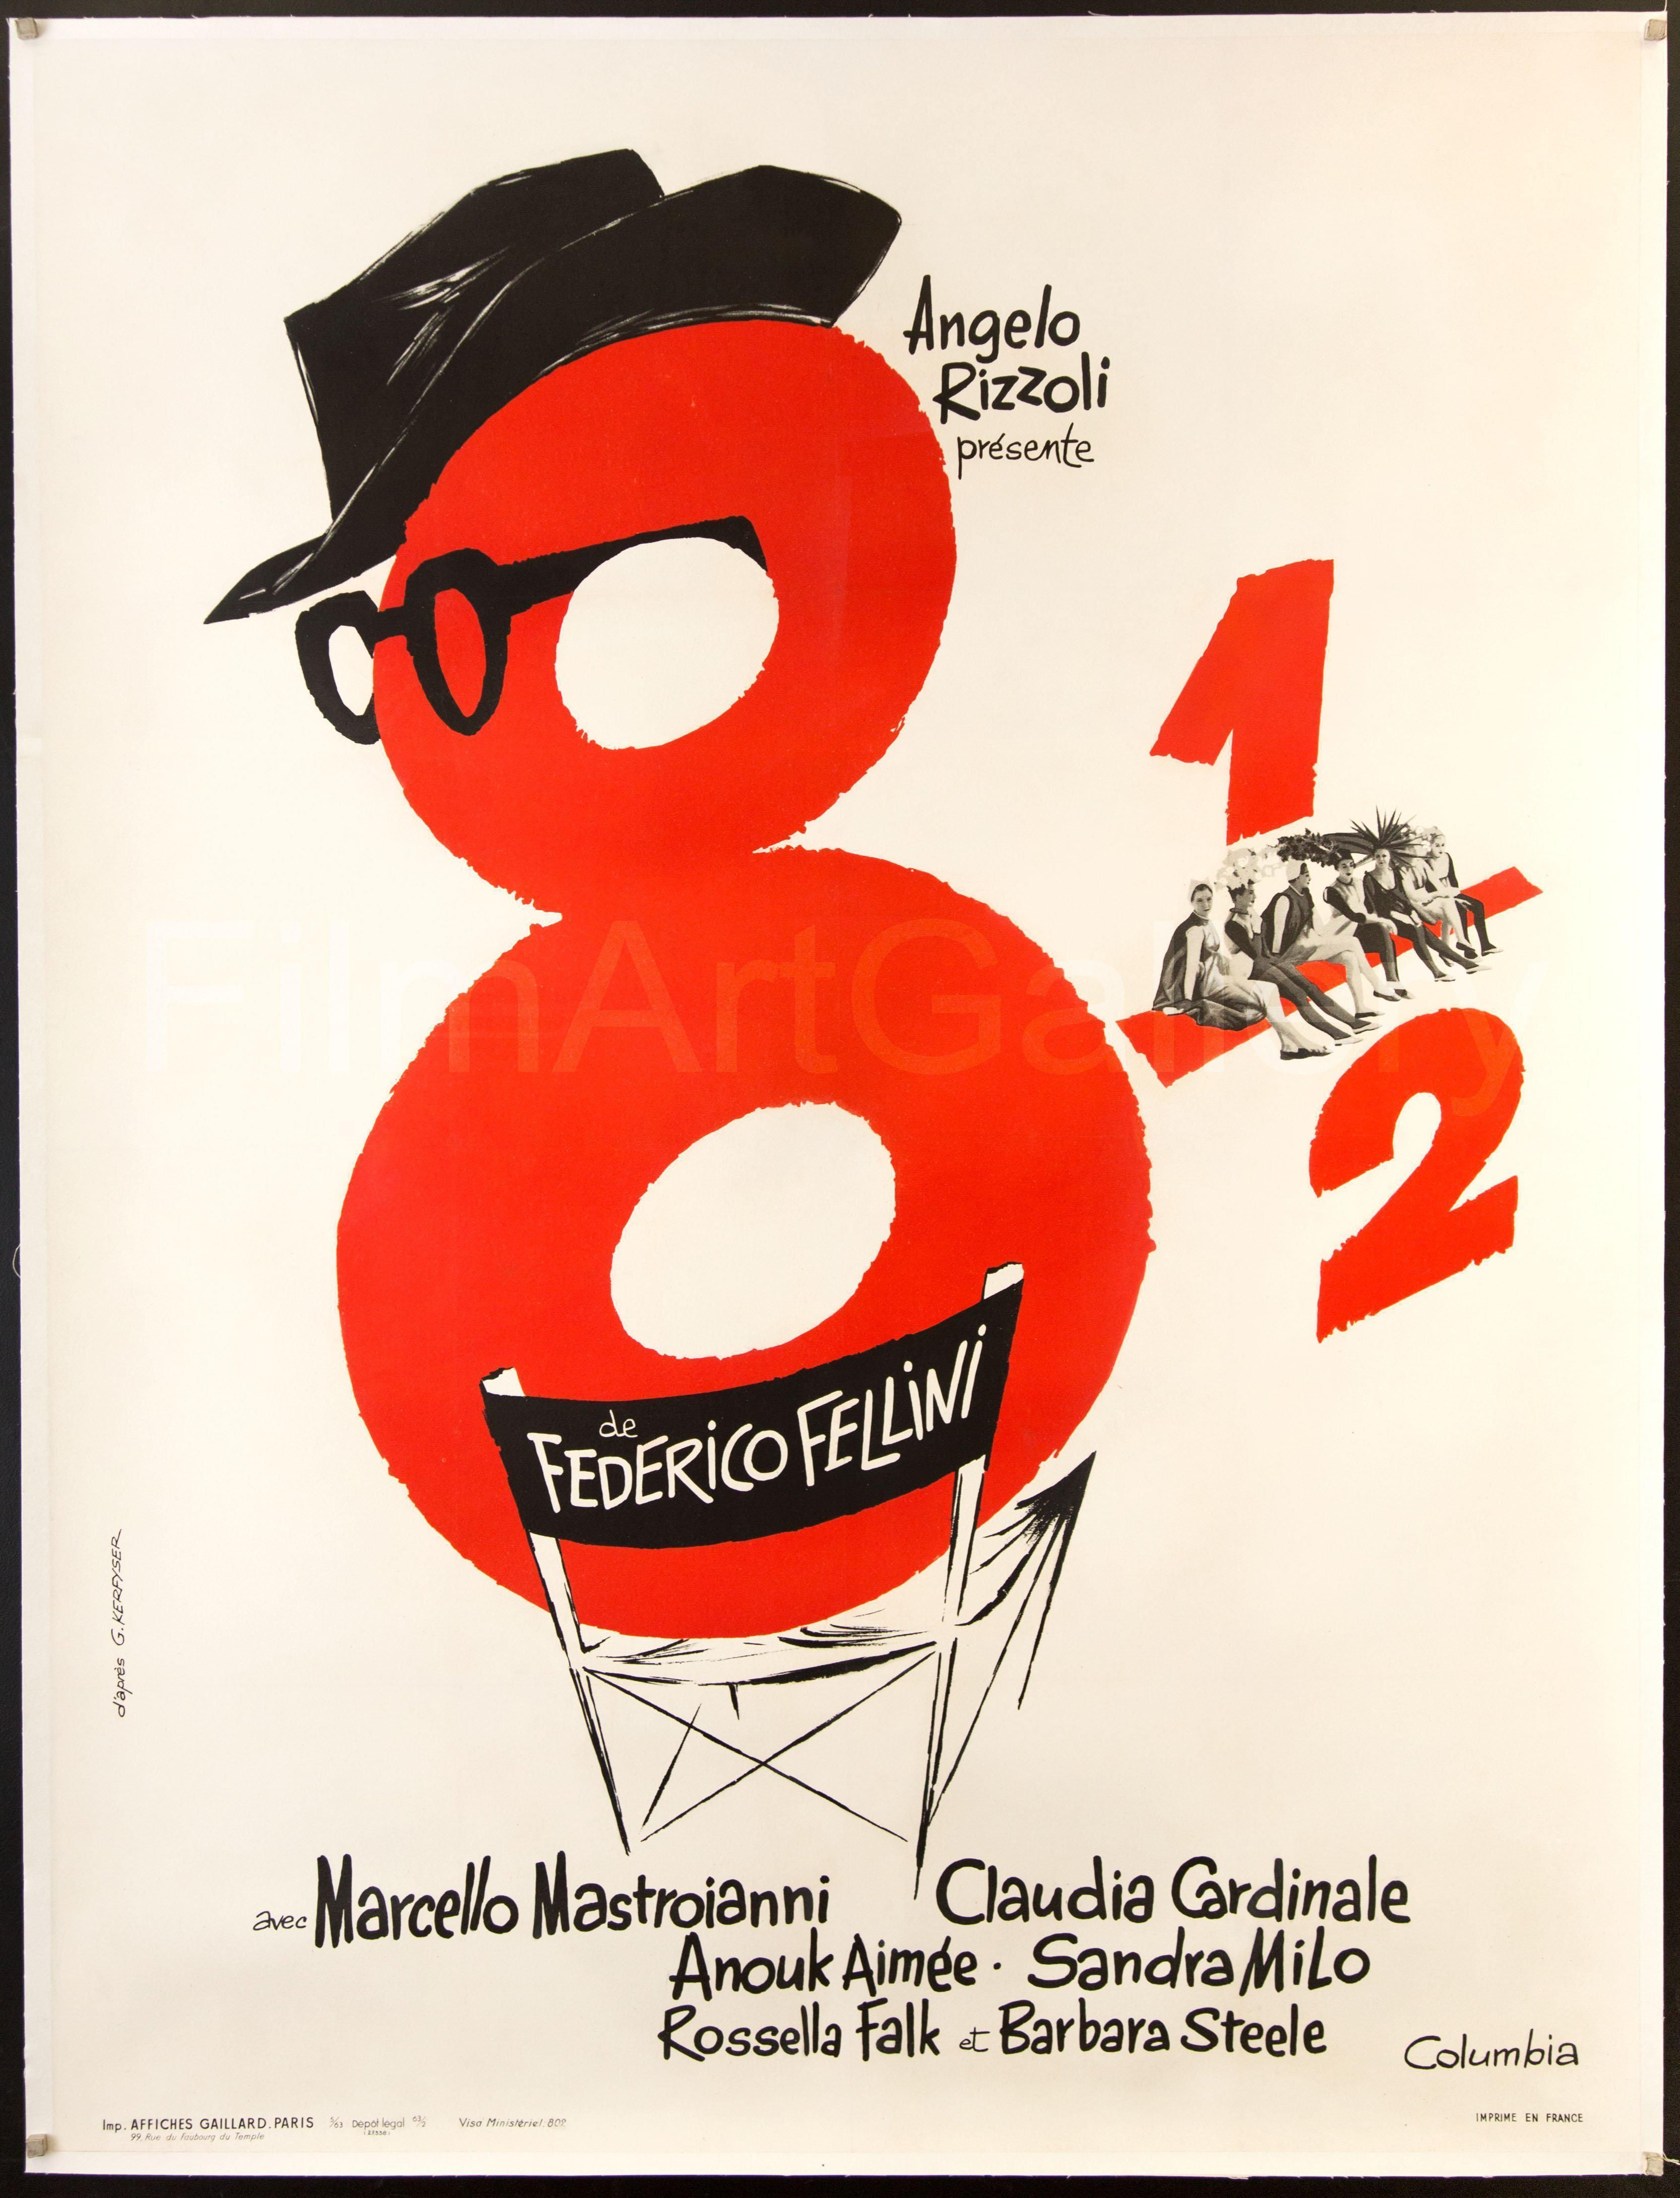 8 1 2 1963 France Poster Art Movie Posters Vintage Movie Posters